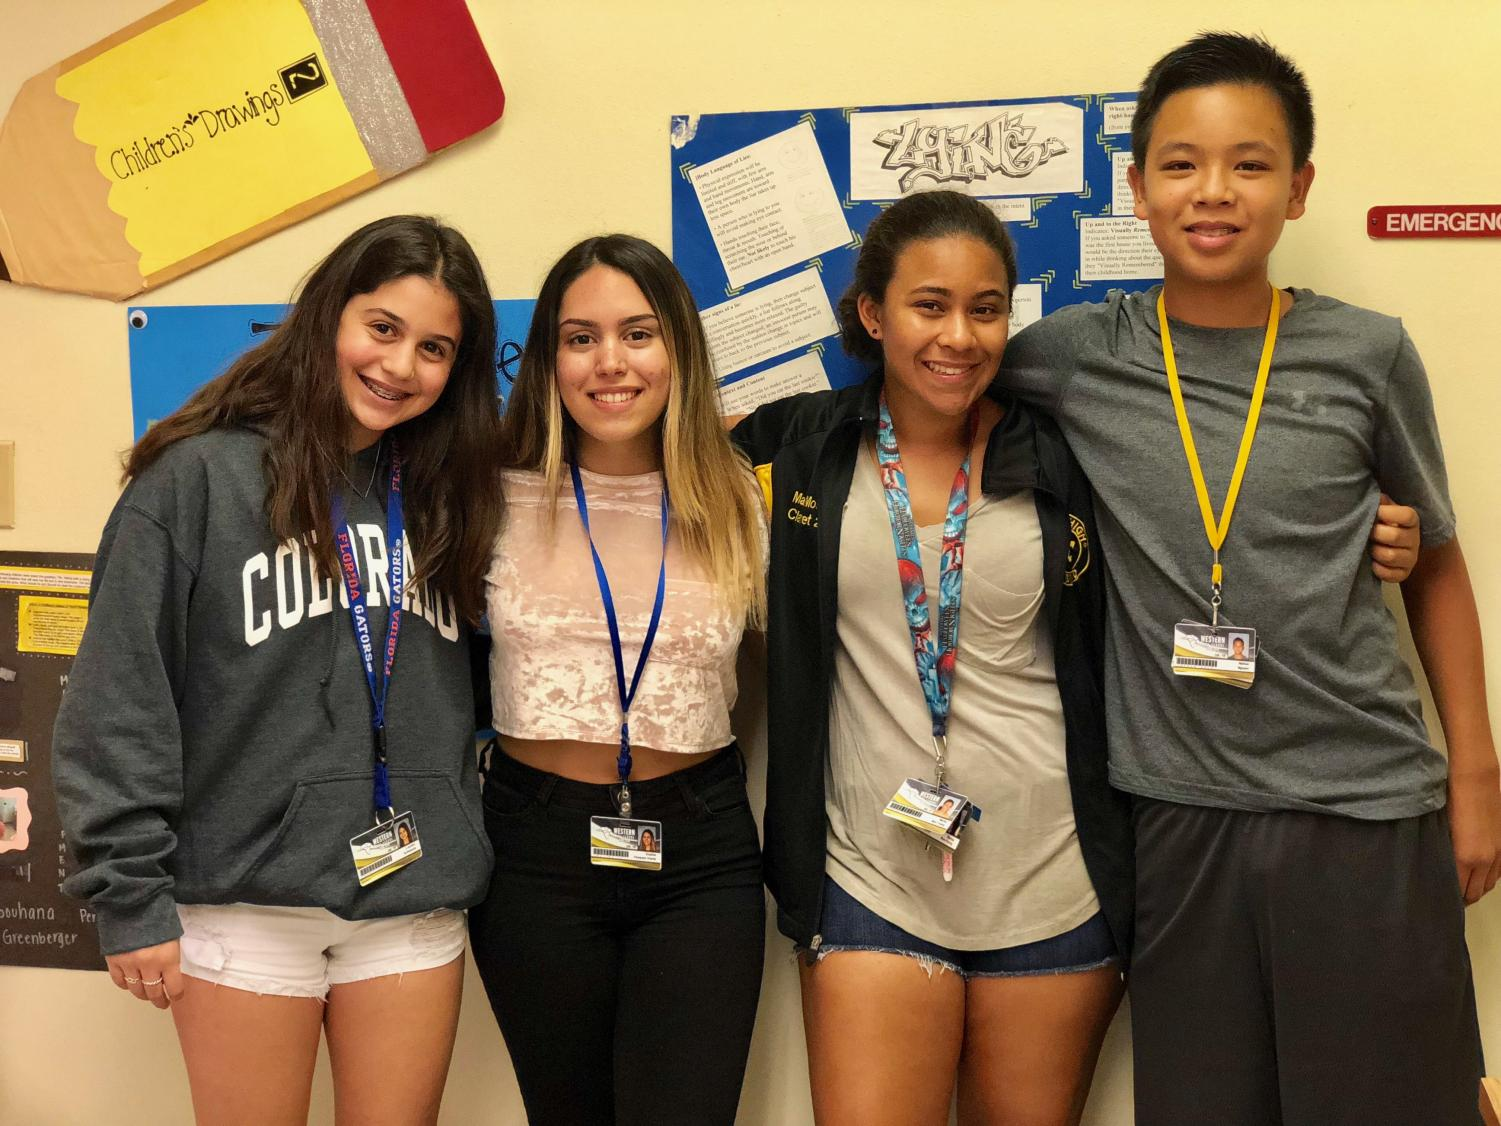 Students Lauren Schwartz, Sophia Vasquez, Marisa Moo Young and Nathan Nguyen display their daily worn IDs.